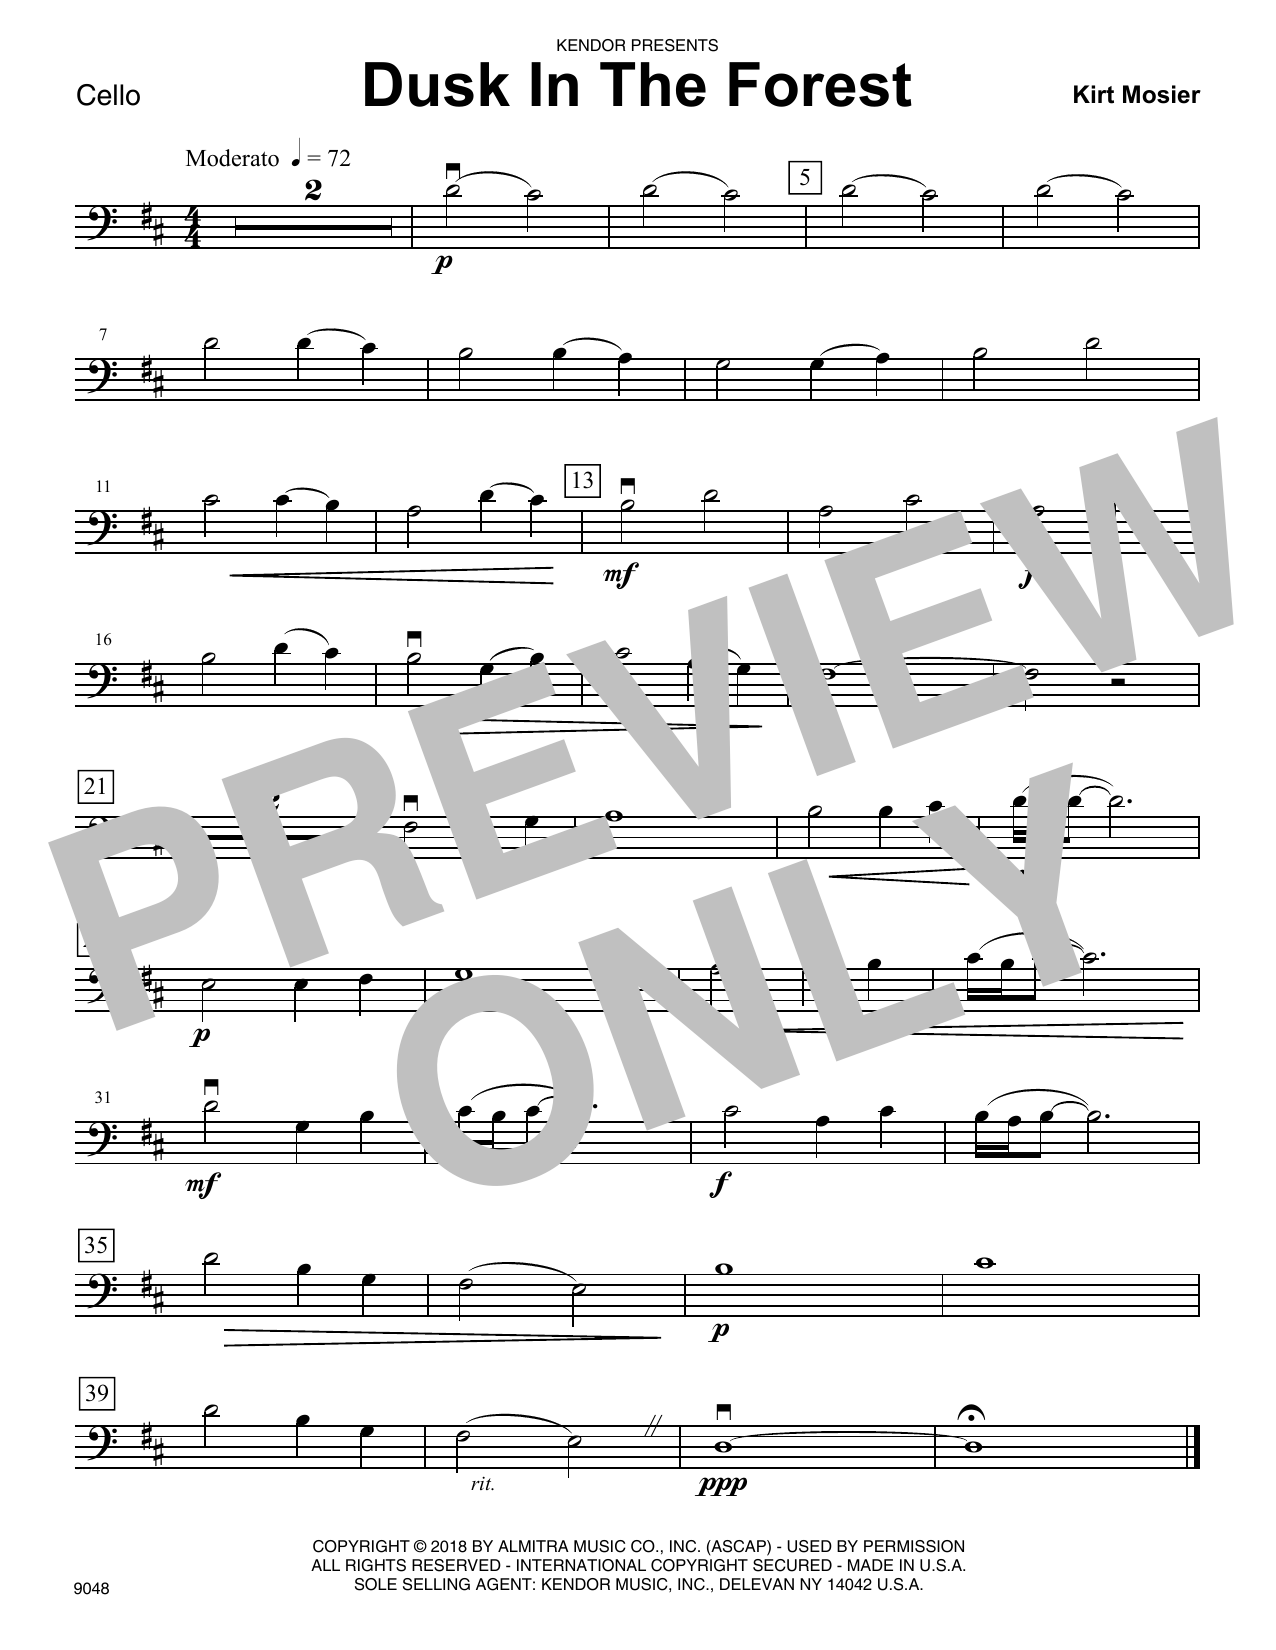 Kirt Mosier Dusk In The Forest - Cello sheet music notes and chords. Download Printable PDF.